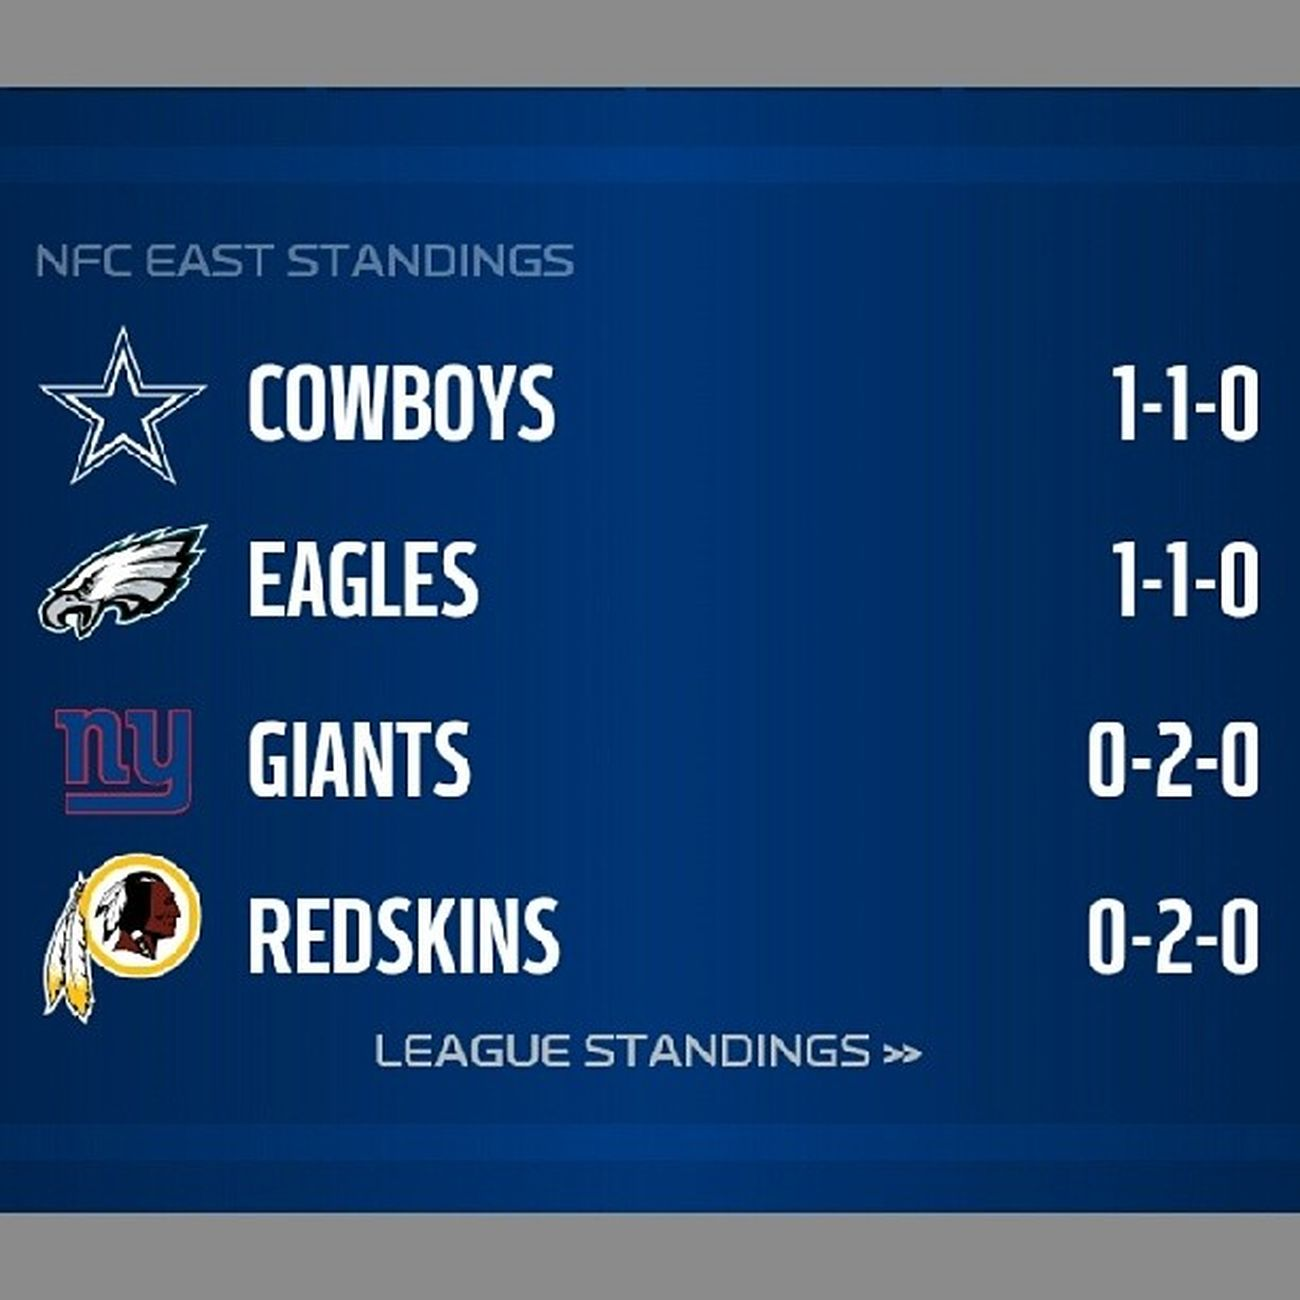 In other NFCEast news... HowBoutThemCowboys